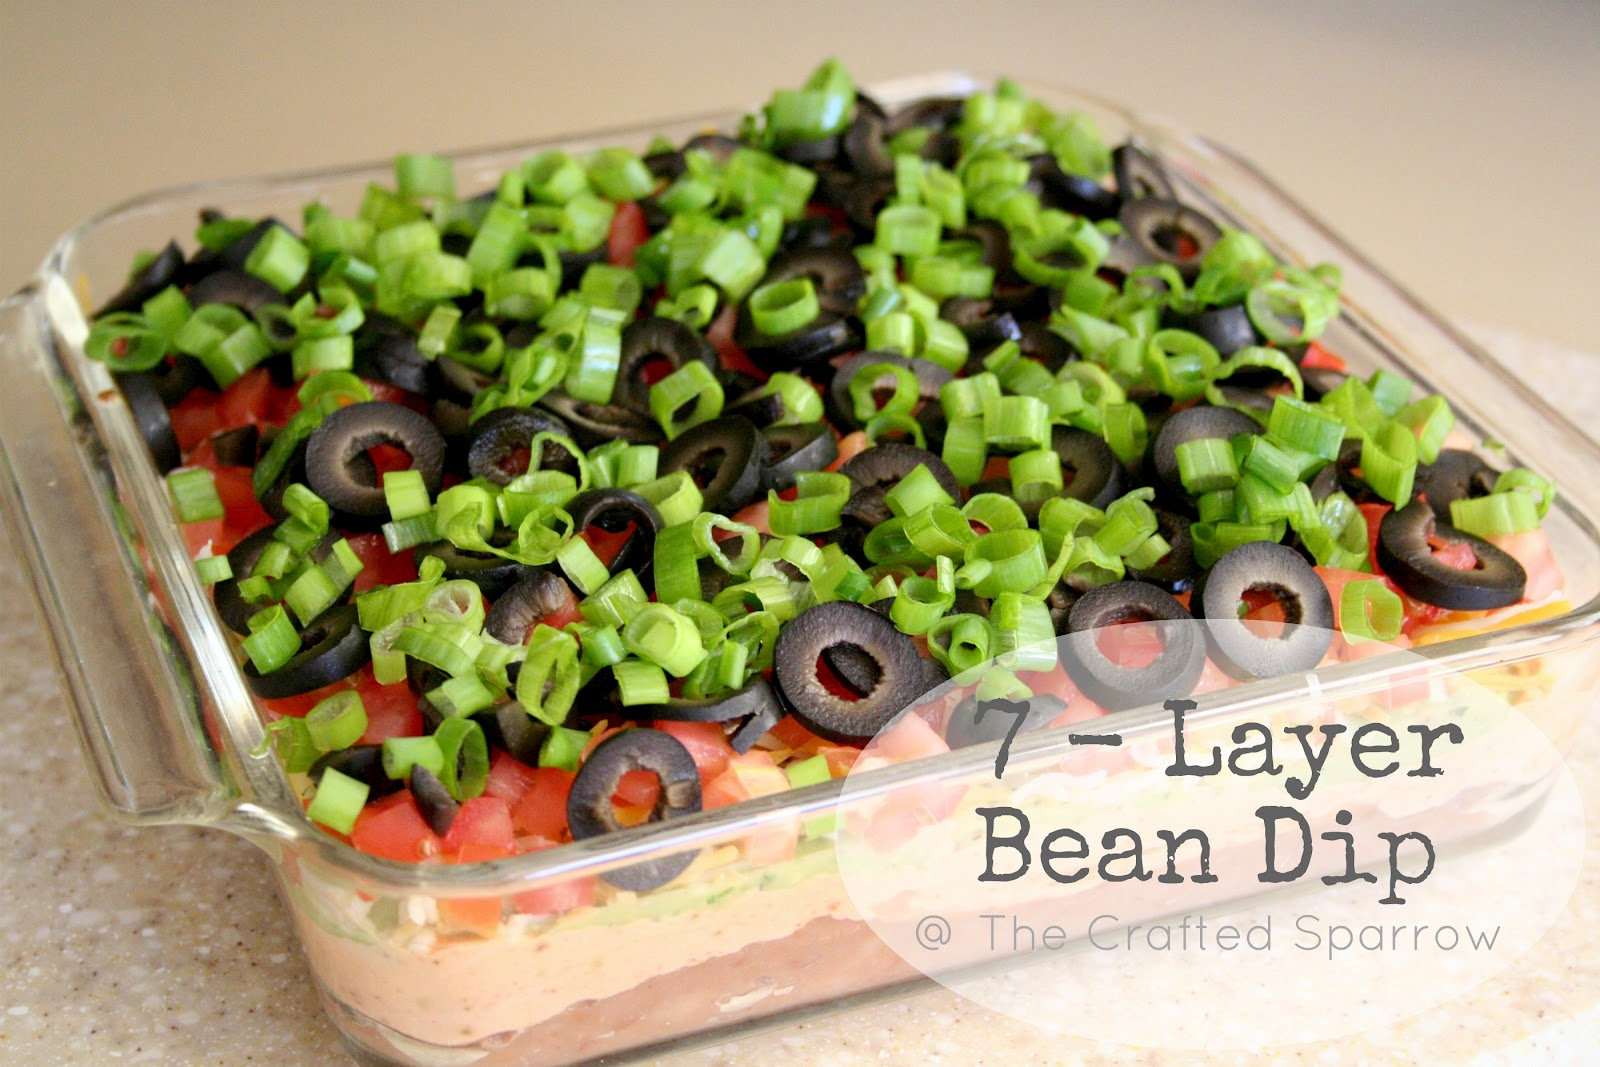 Layer Bean Dip & Guacamole